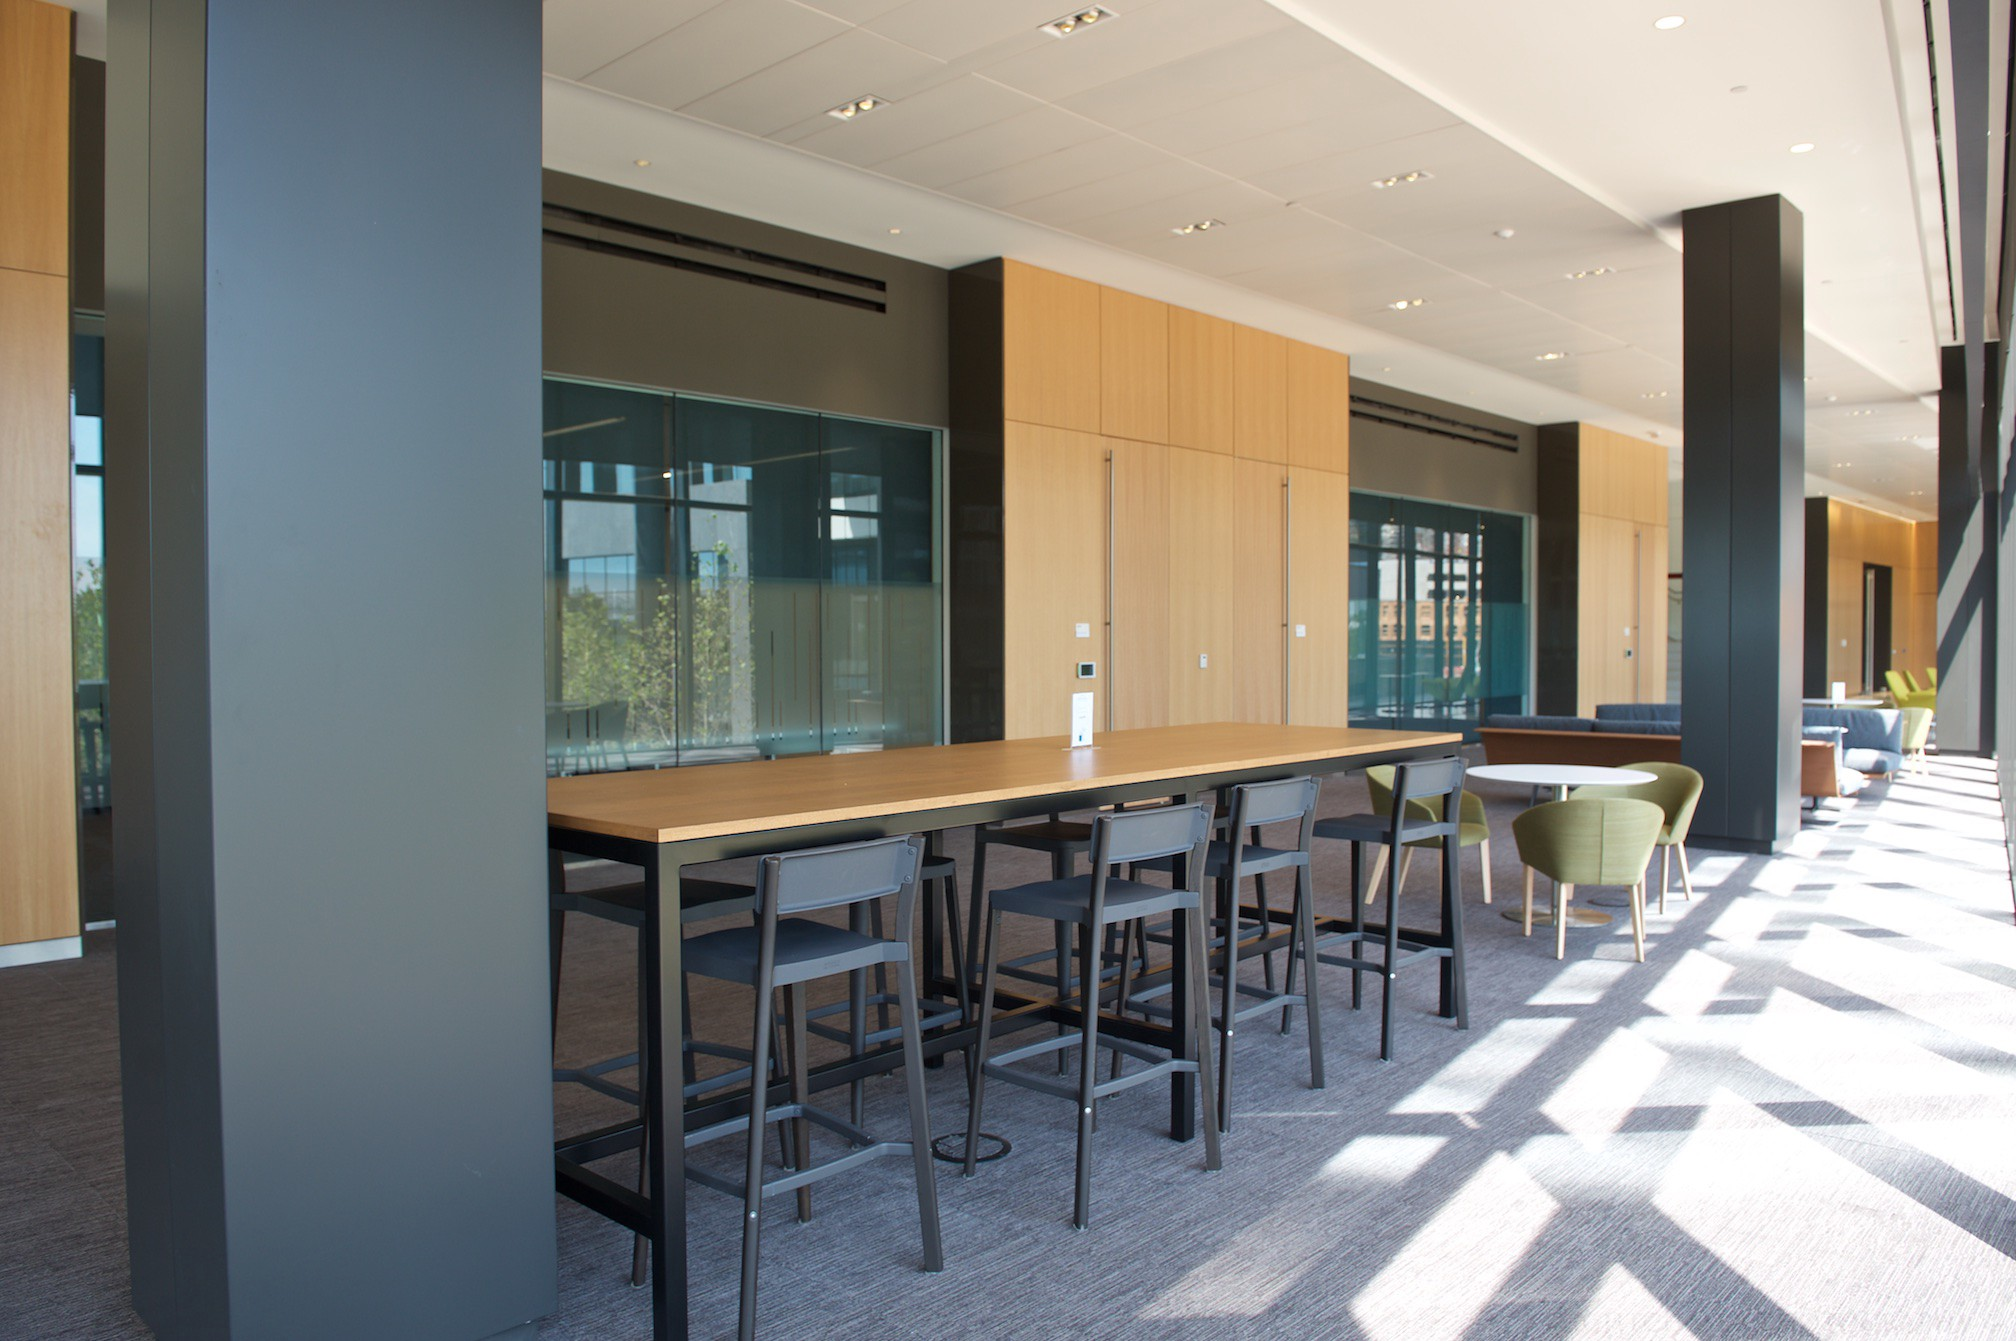 Healthy Interiors in Action: New Partners HealthCare